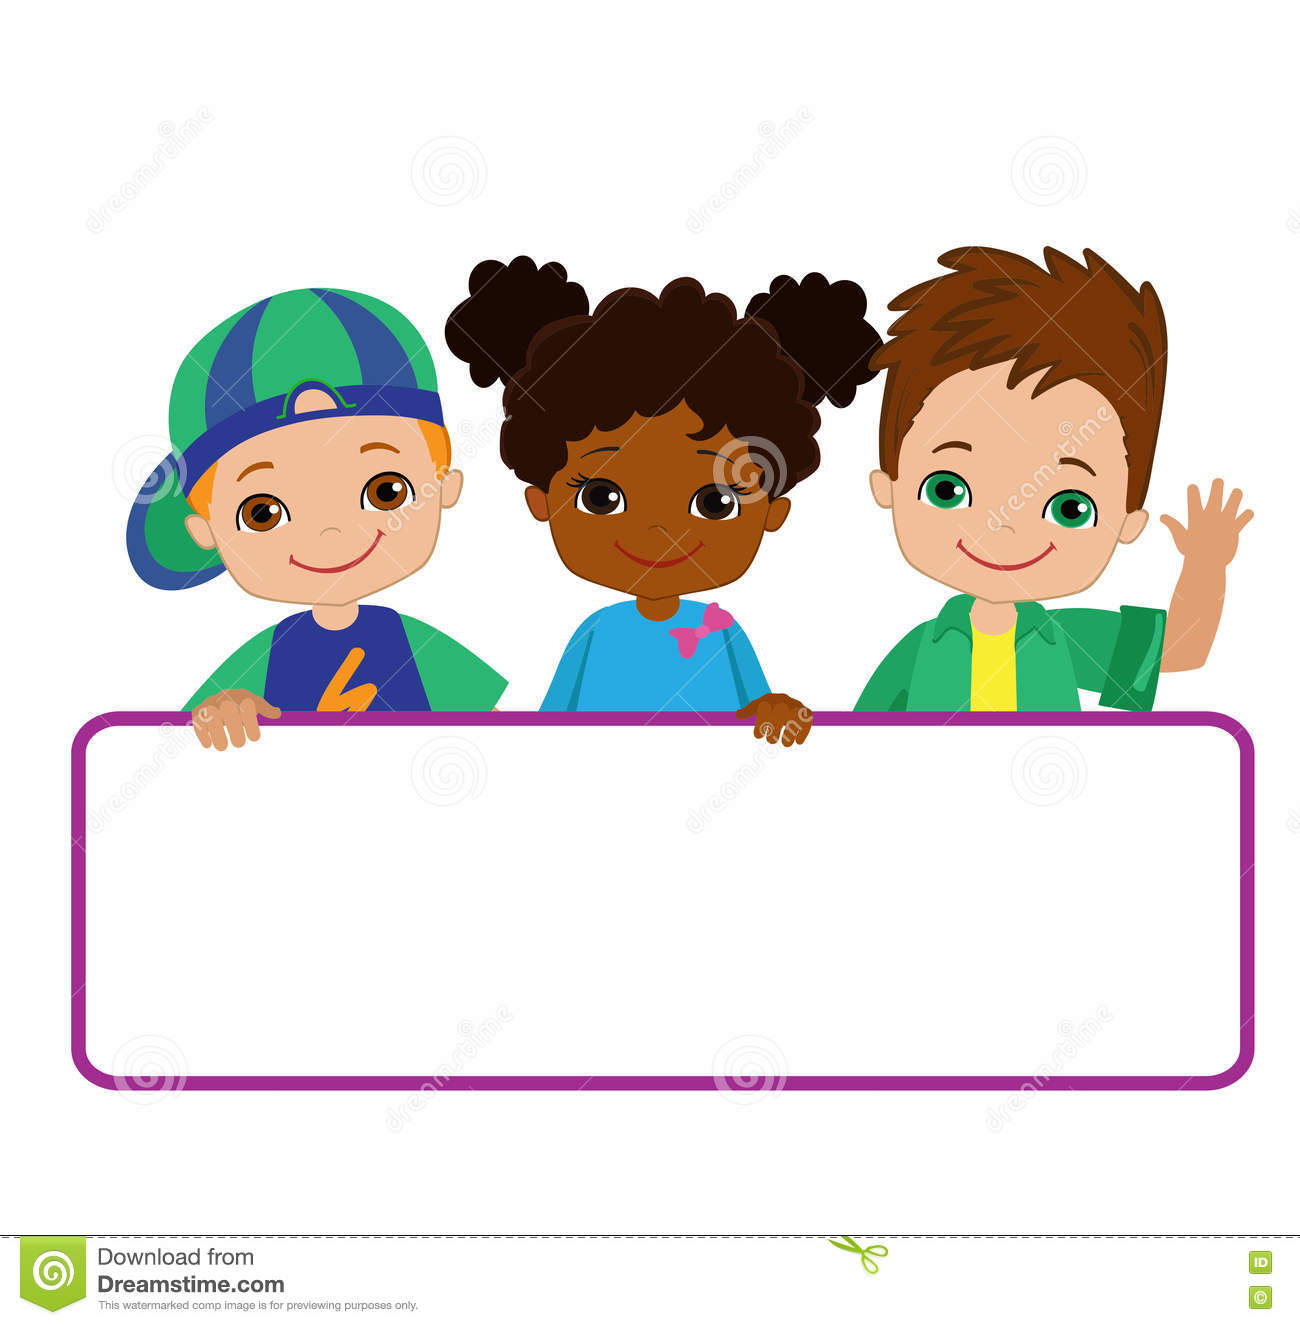 Kids With White Board Stock Photo  Cartoondealerm. Liver Qi Stagnation Signs Of Stroke. Meta Analysis Signs Of Stroke. Psychotic Depression Symptom Signs. Lung Fluid Signs. Open House Signs Of Stroke. Sunny Signs Of Stroke. Traffic Chicago Signs Of Stroke. Infinity Tattoo Signs